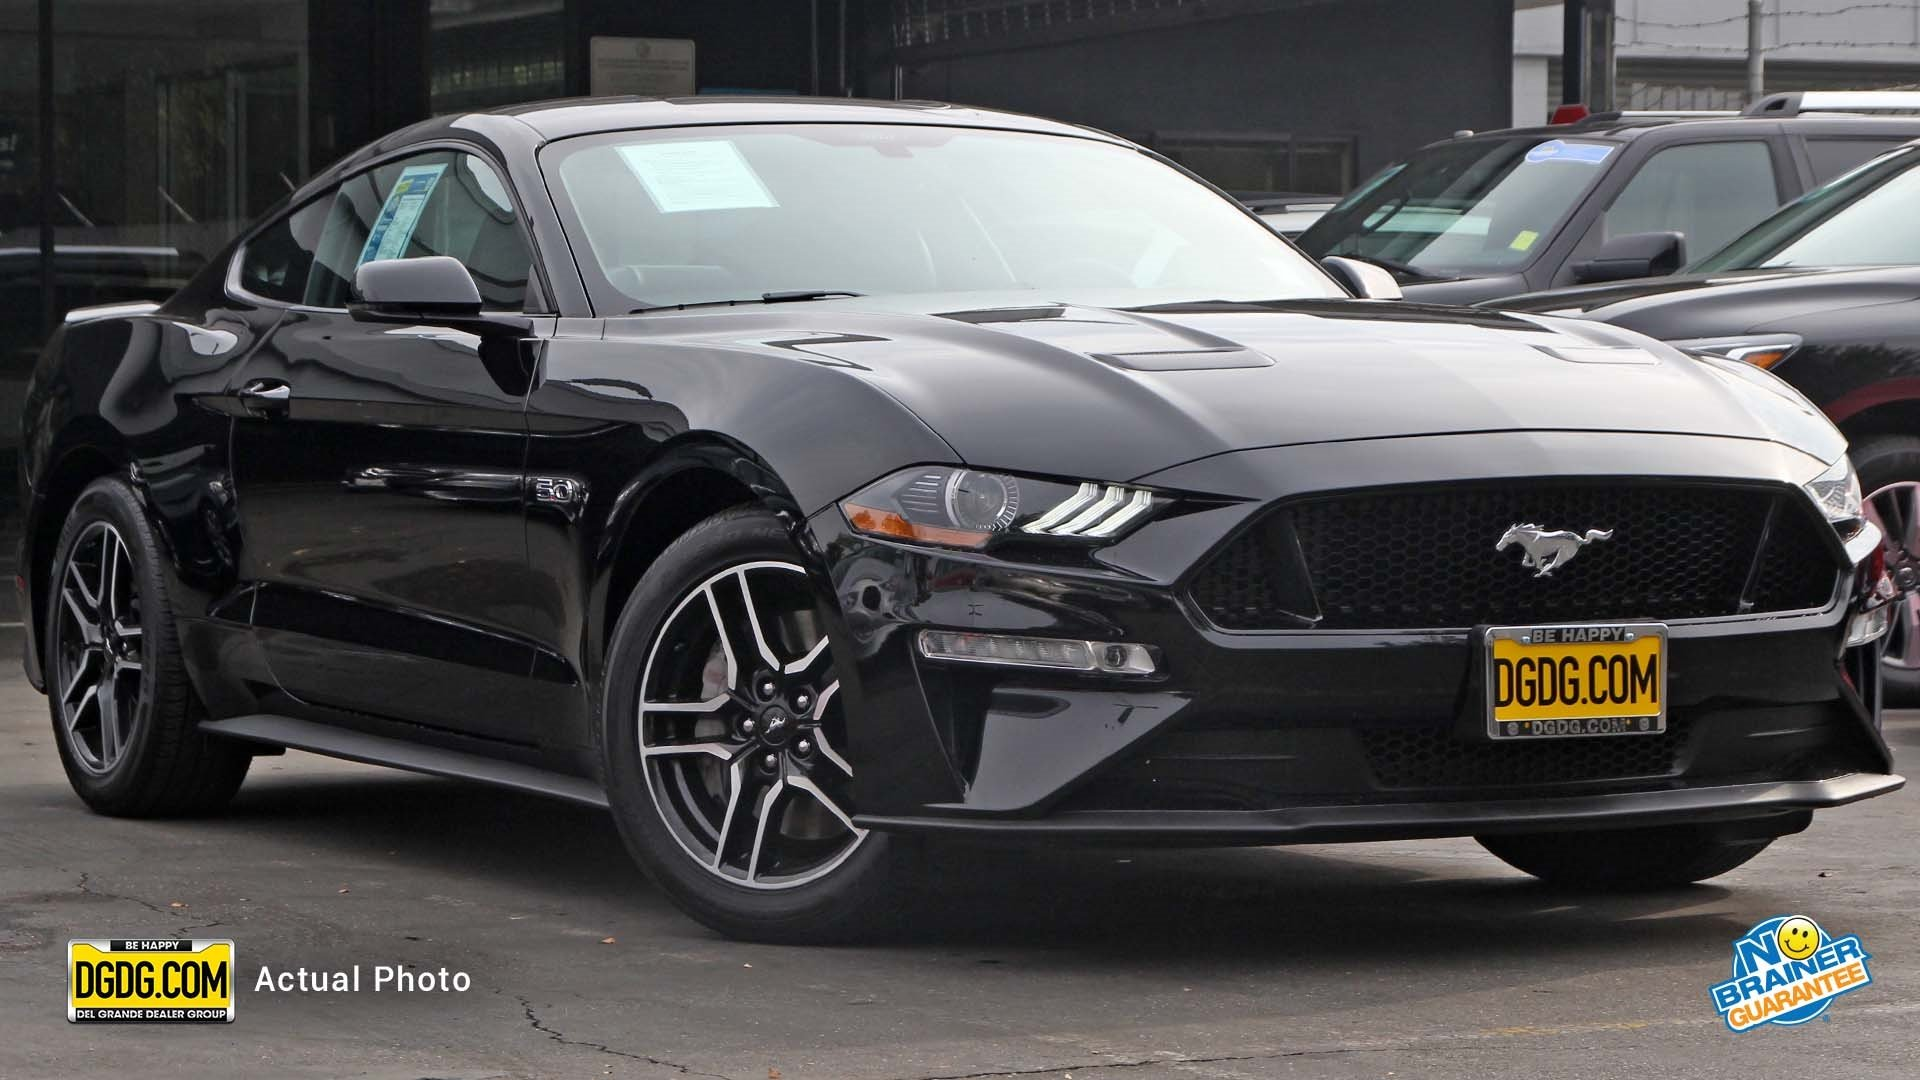 Pre Owned 2018 Ford Mustang GT Premium 2dr Car in San Jose UO